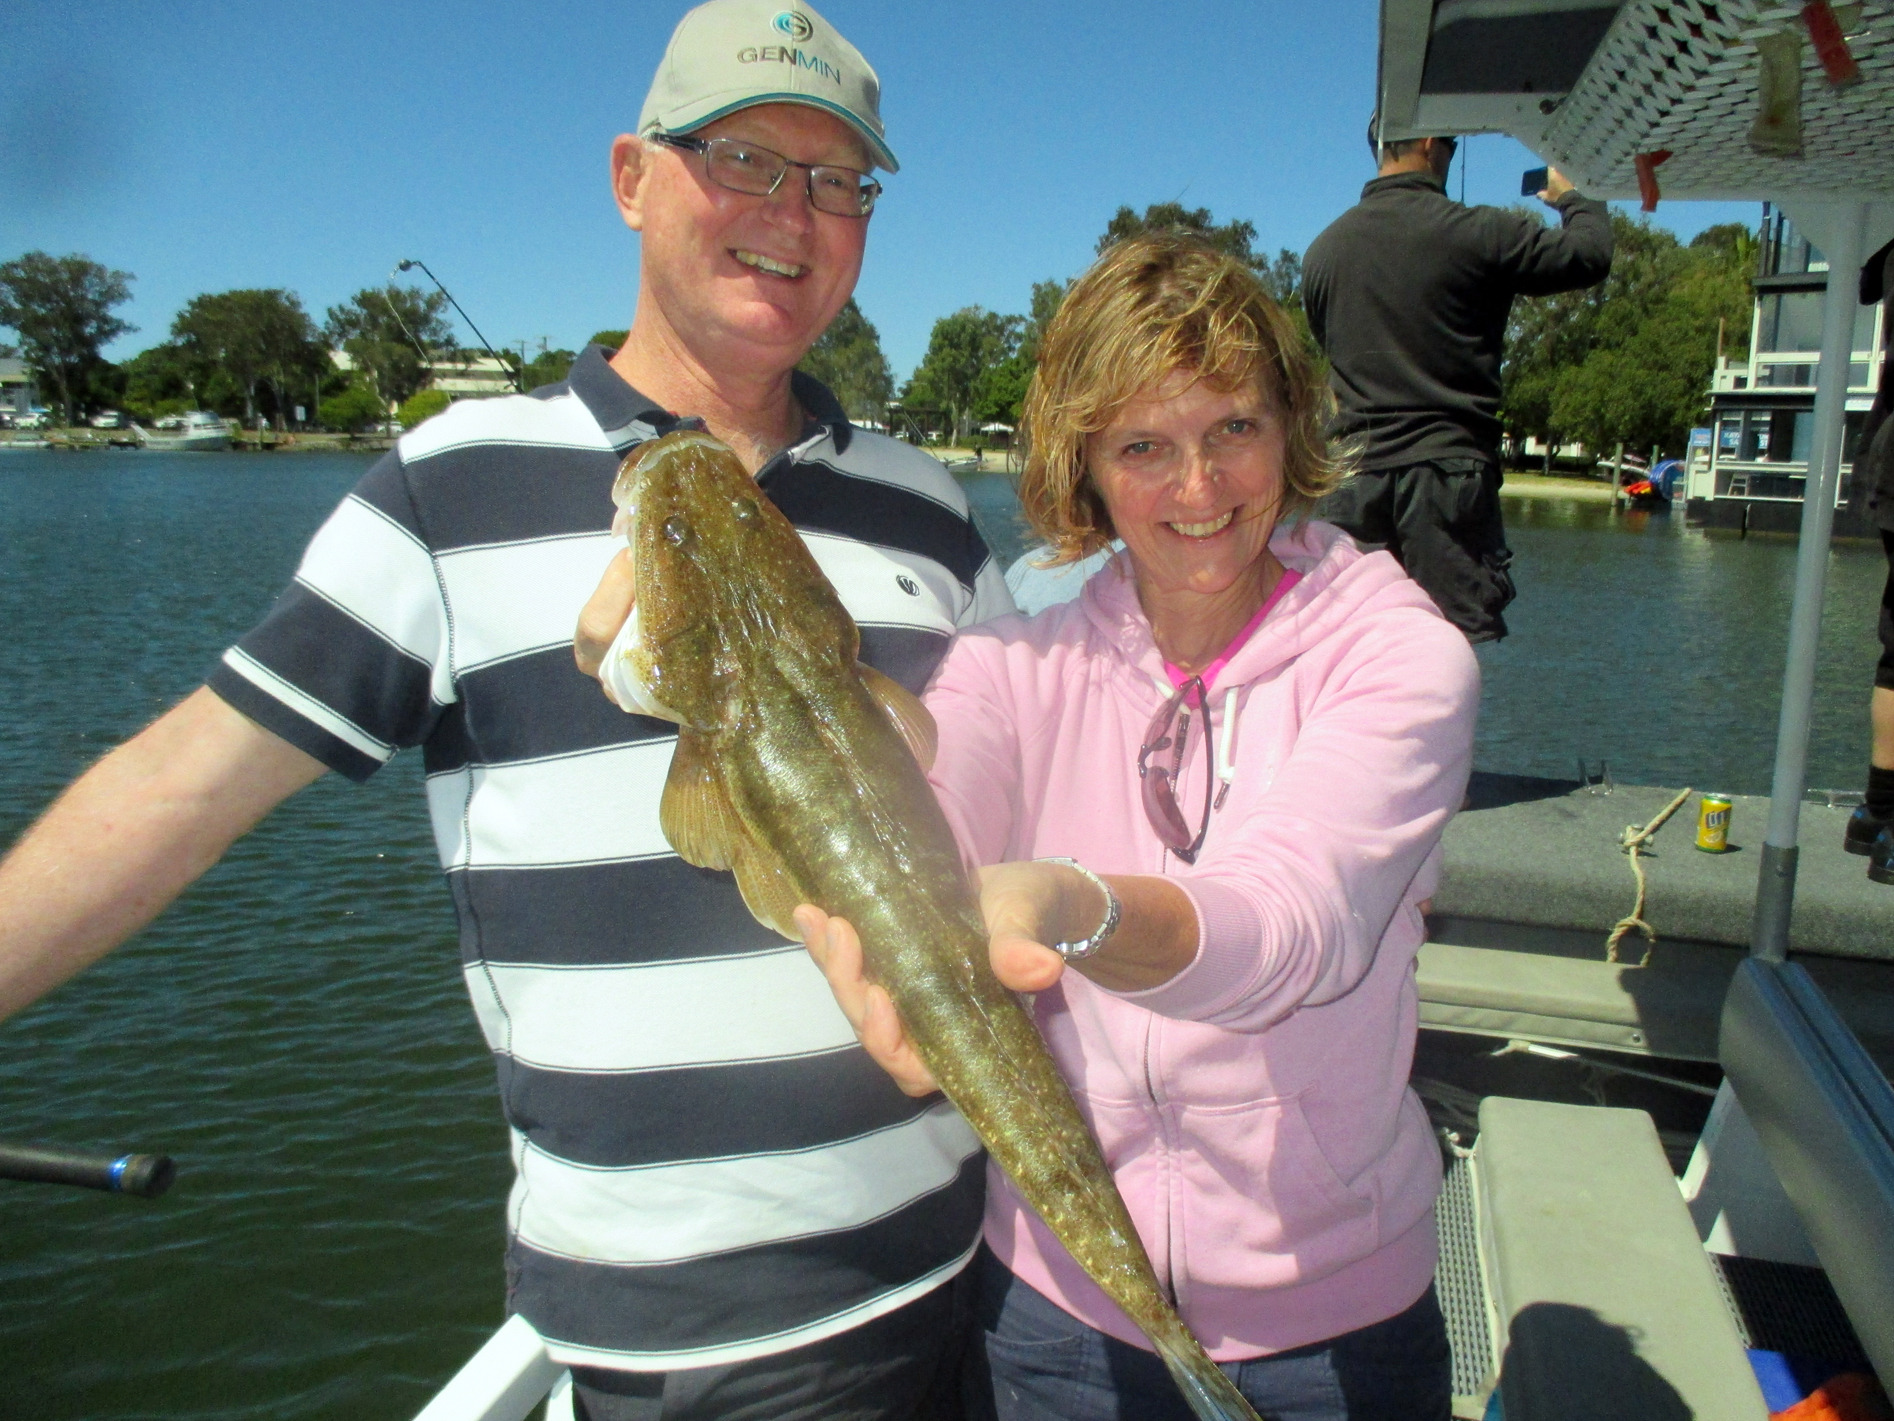 Peter and Hillary from Ton-bridge, U.K. caught a nice 70cm Flathead aboard the Noosa River Fishing and Crab Adventures!